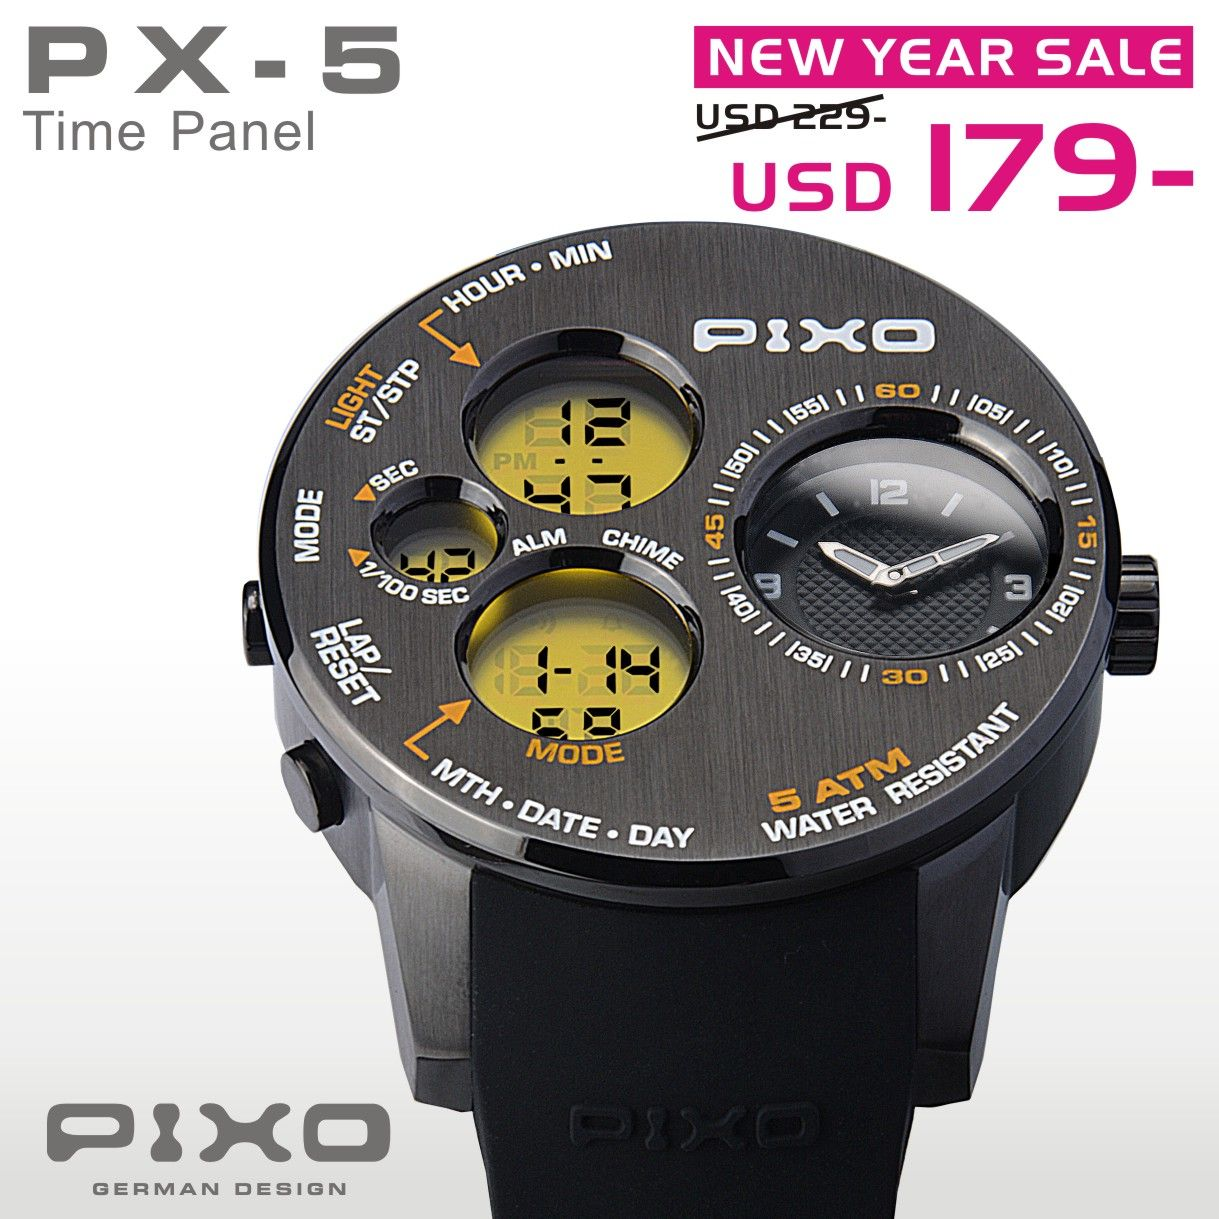 PX-5 TIME PANEL, Dual time display.  (COUPON CODE: PX5-179) Please see the details at : http://www.pixowatch.com/PIXO-PX-5